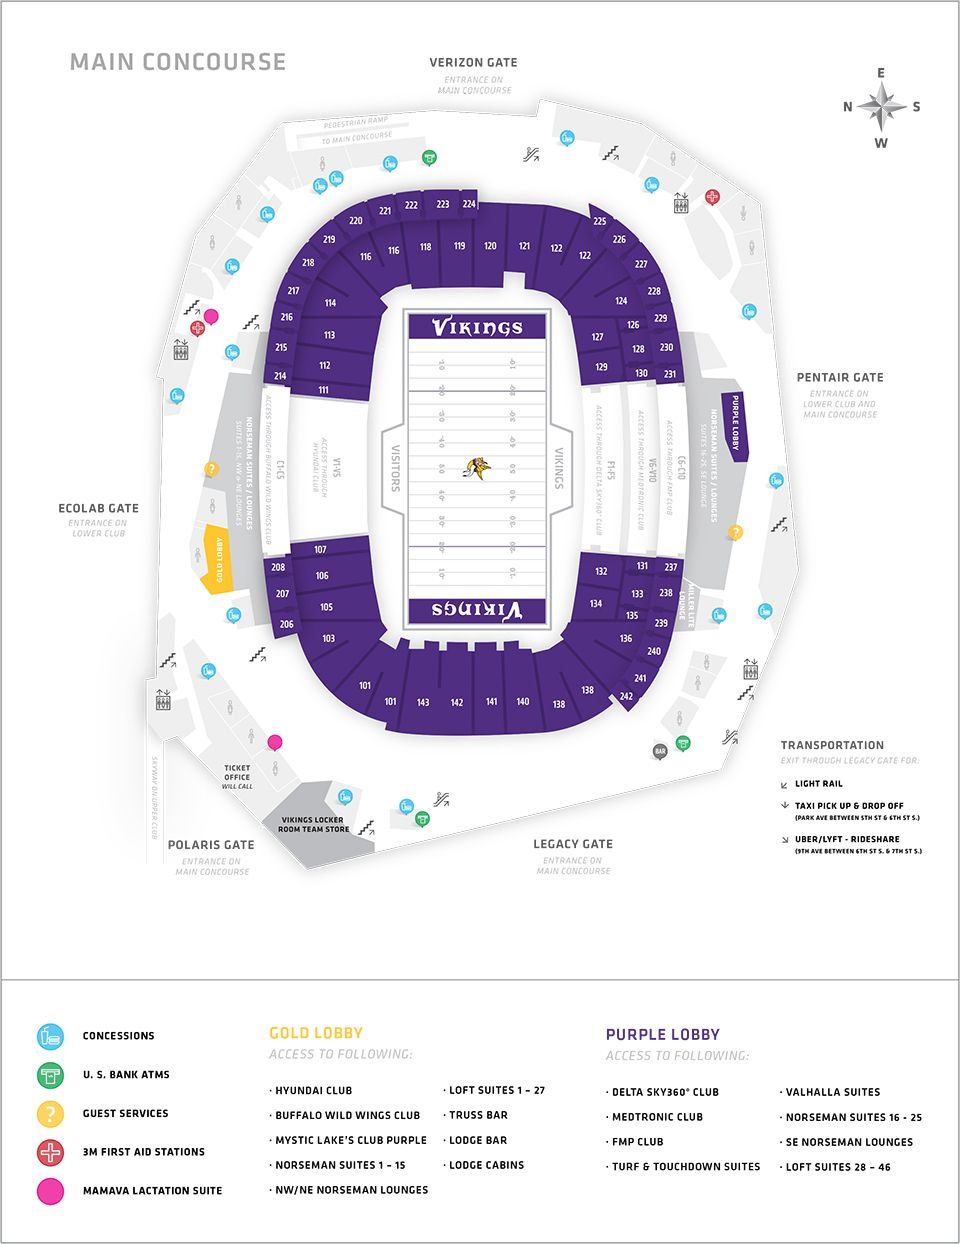 Minnesota Vikings US Bank Stadium Map Seating Chart STUFF - Us bank stadium concourse map